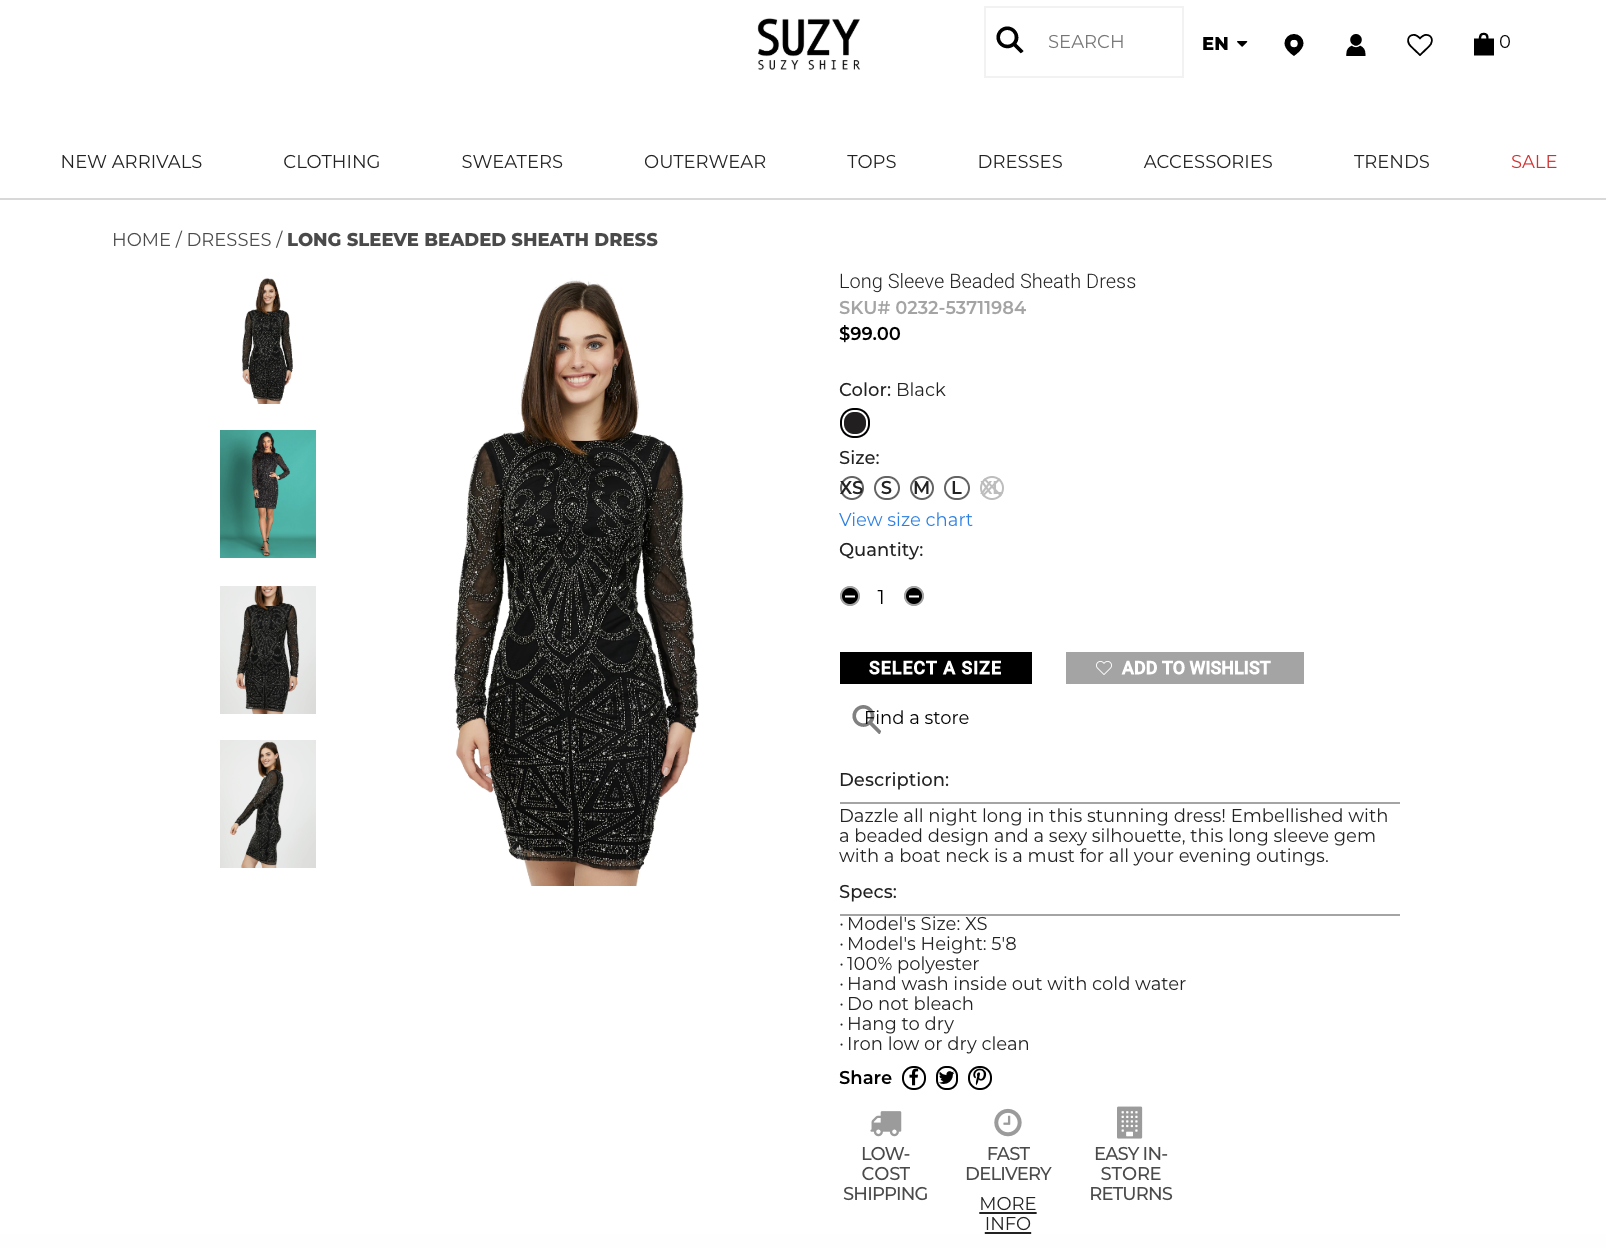 suzy shier product page